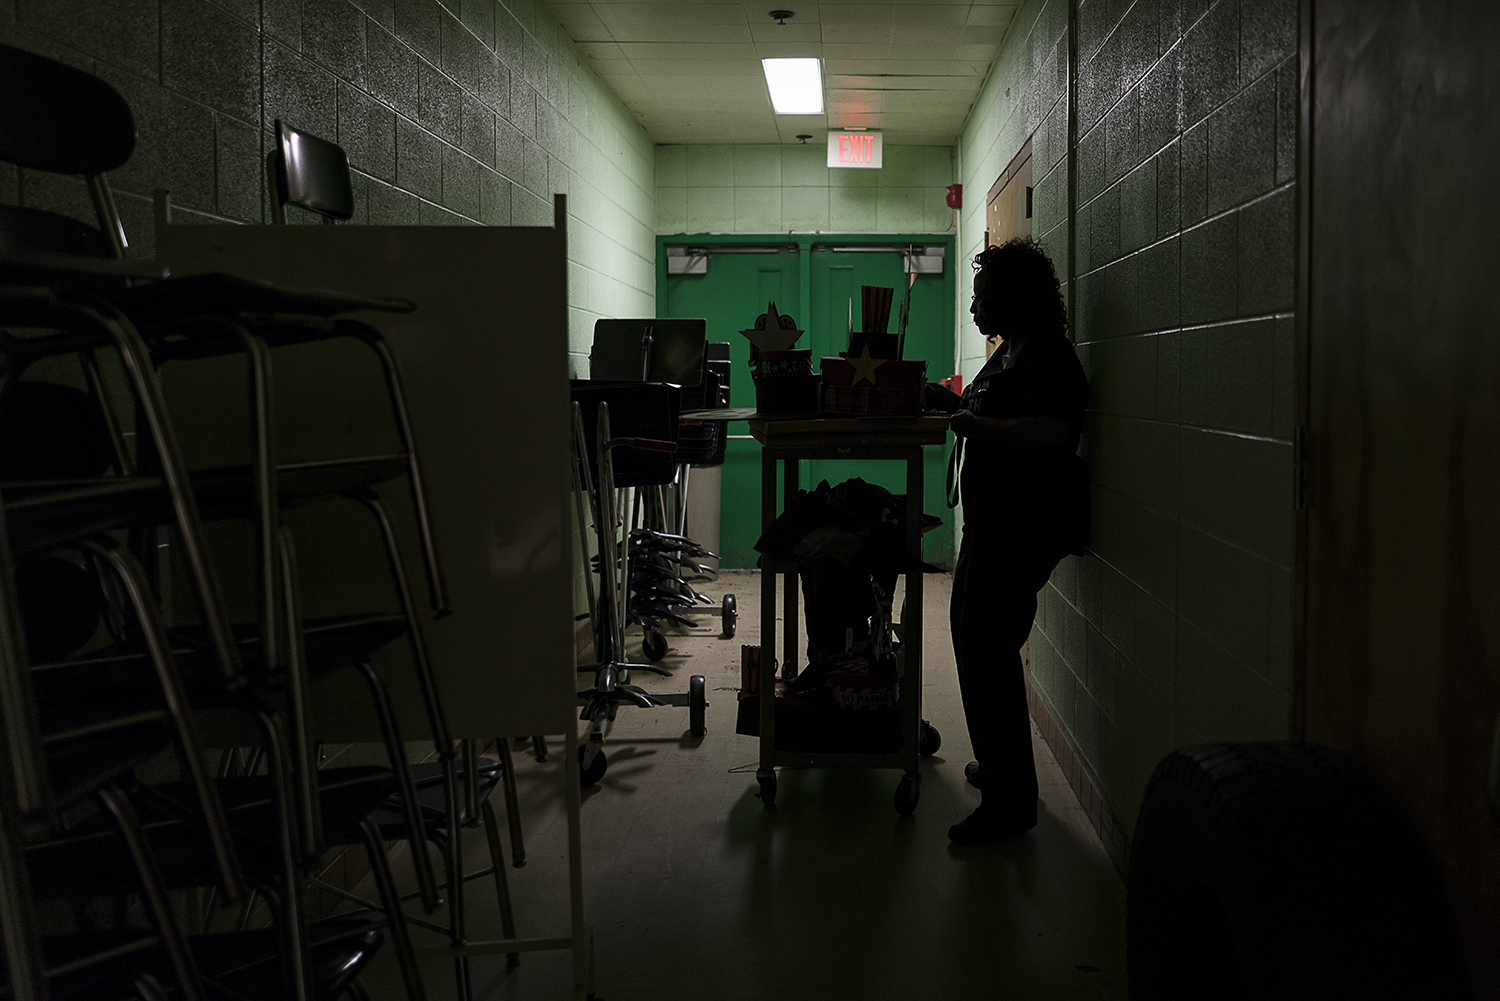 In a dimly lit corridor between the band room and auditorium at Flint Northwestern High School, Sheila Miller-Graham stands by her cart loaded with decorations for homecoming.